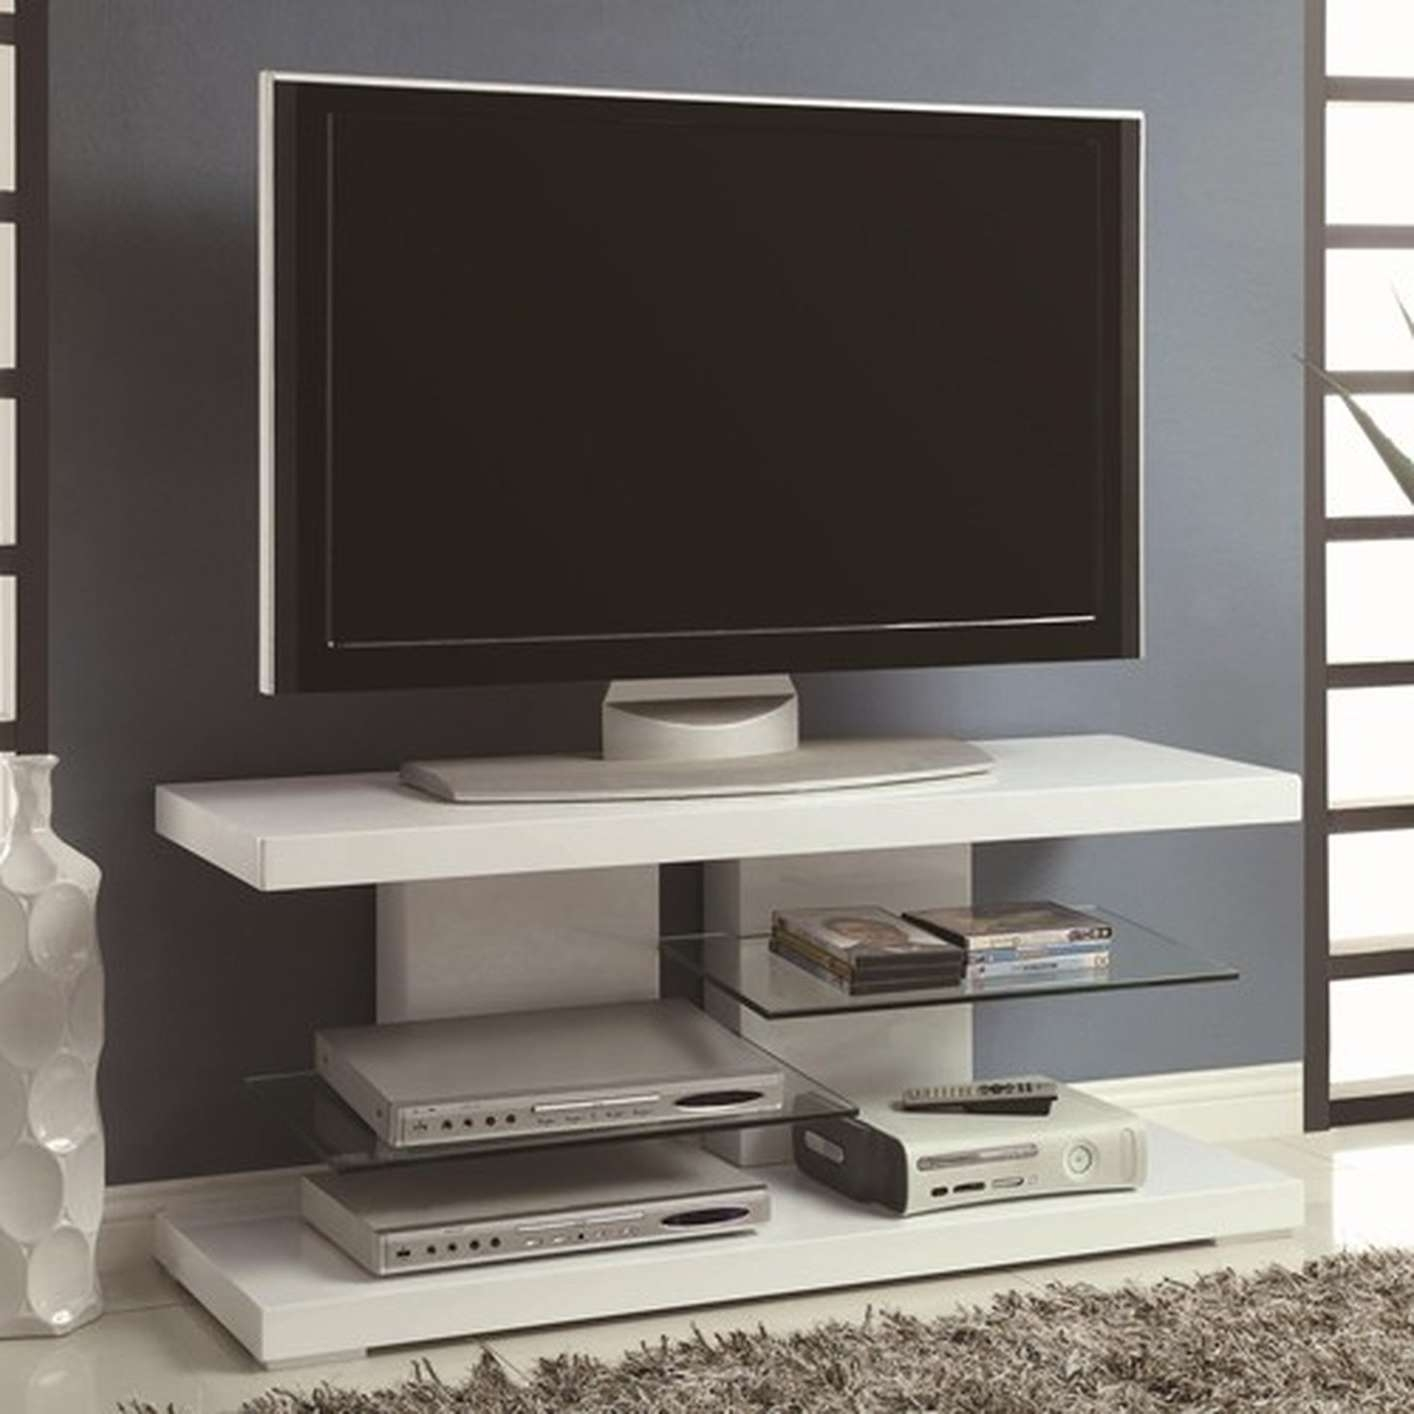 White Glass Tv Stand – Steal A Sofa Furniture Outlet Los Angeles Ca With Glossy White Tv Stands (View 6 of 15)